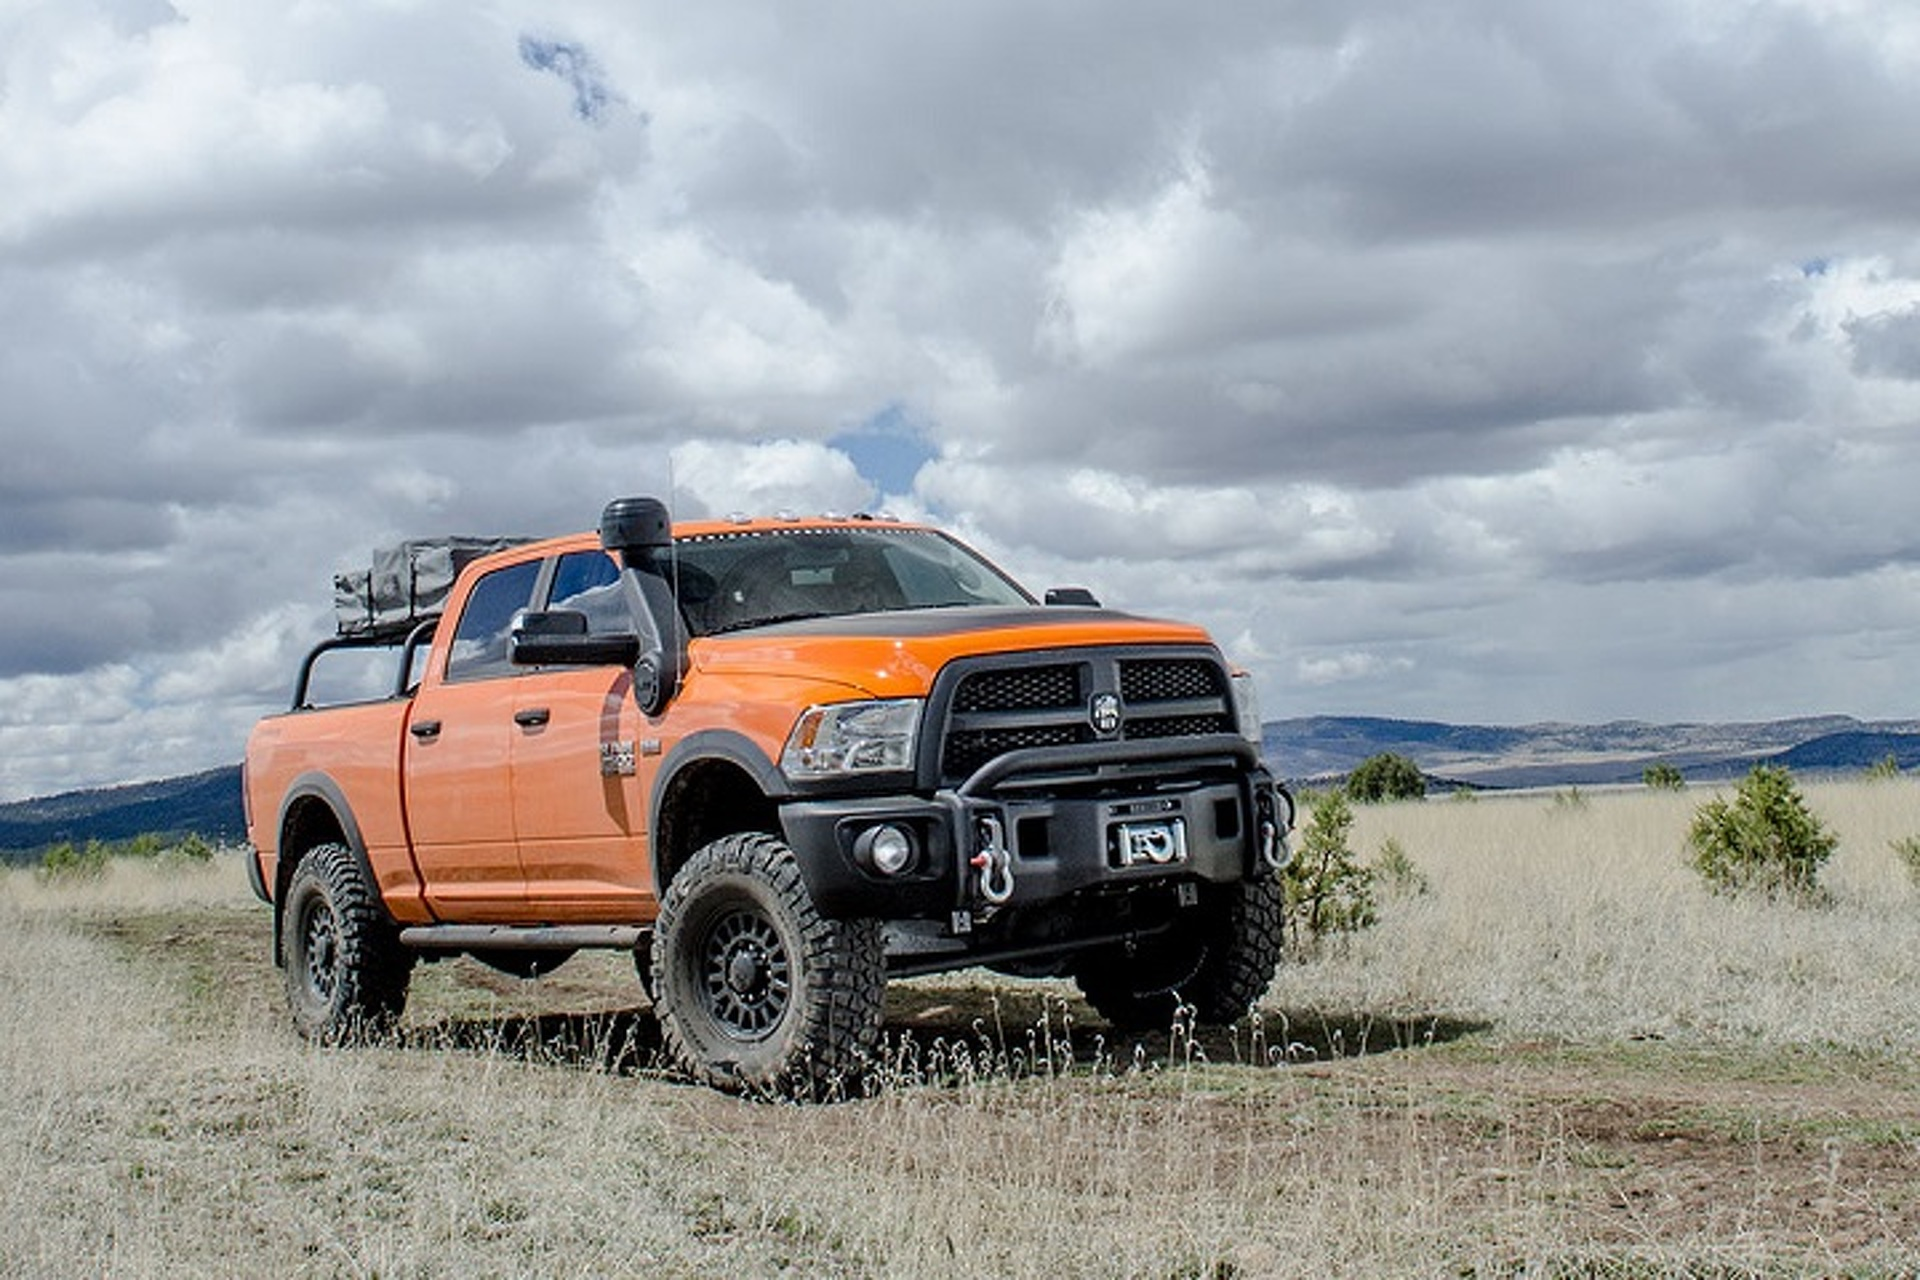 AEV Ram Prospector is an Off-Road Monster